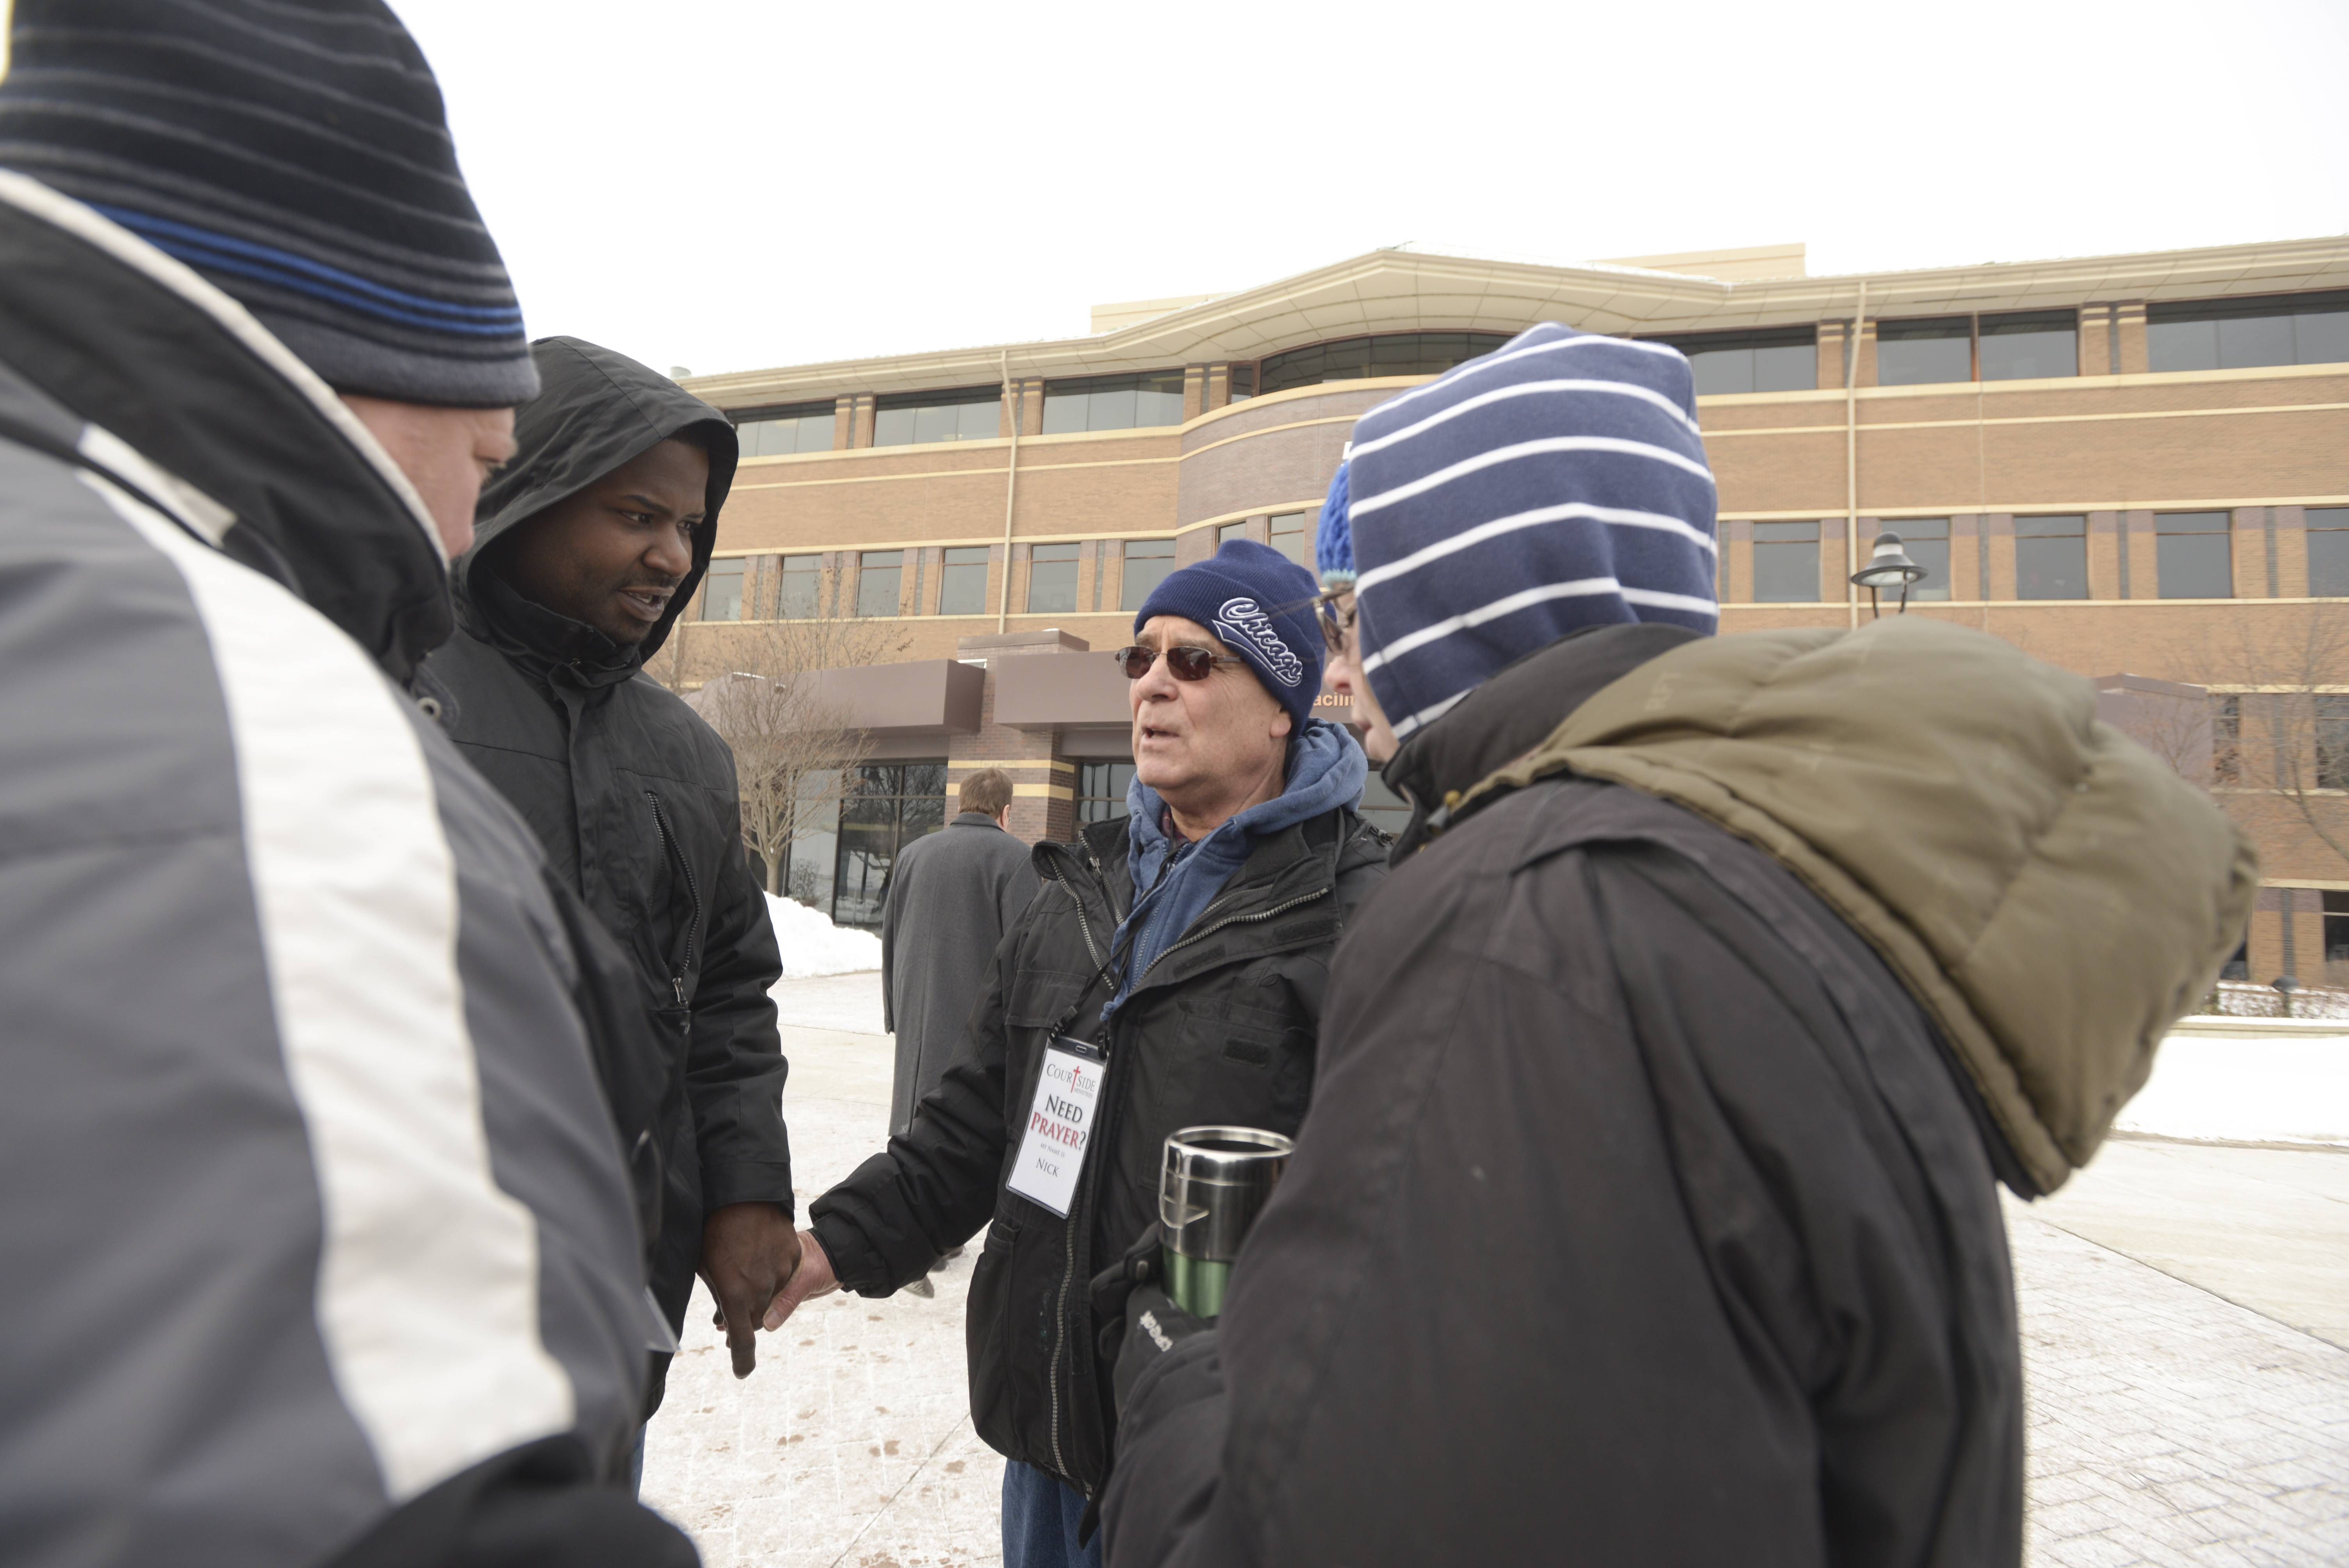 Members of Courtside Ministries offer prayer to Steven Garner of Bartlett, center left, outside the DuPage County courthouse. The volunteers are, from left, Ken Schrock, Nick Popescu and Kate Perkins.